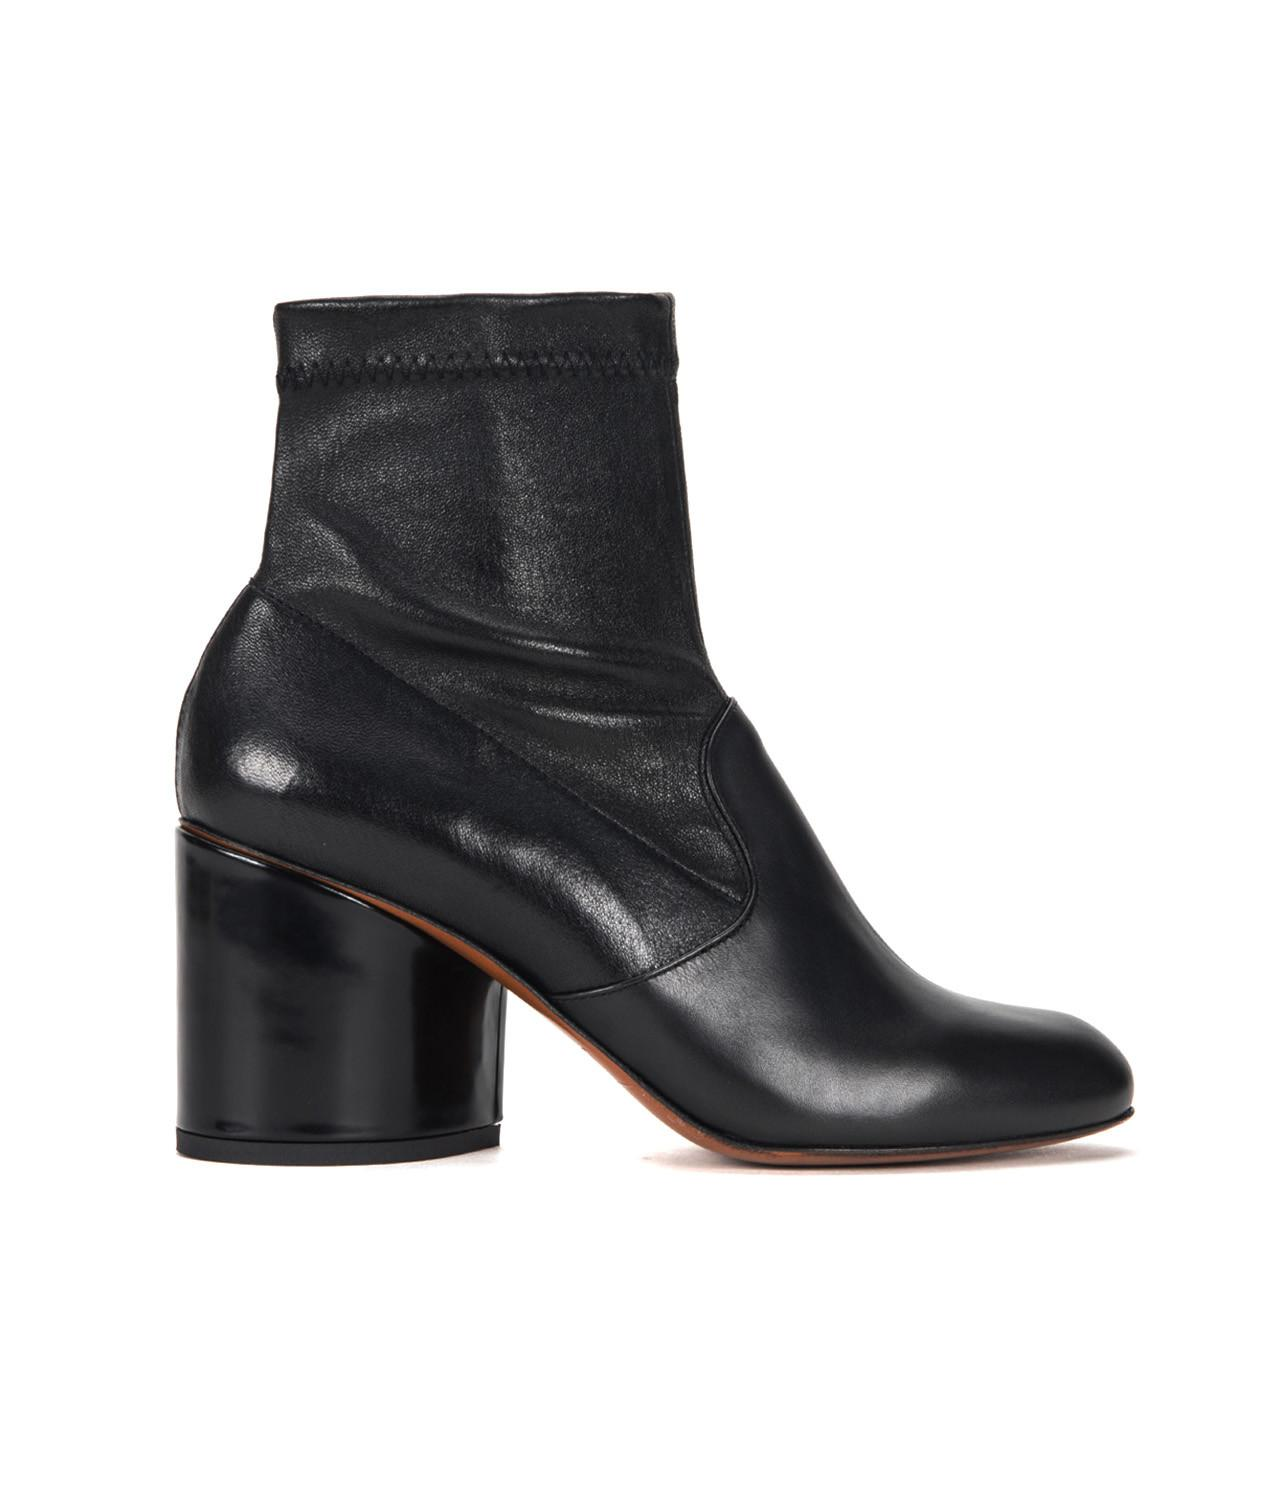 Mayan ankle boots - Black Robert Clergerie HhmzPyKS7A